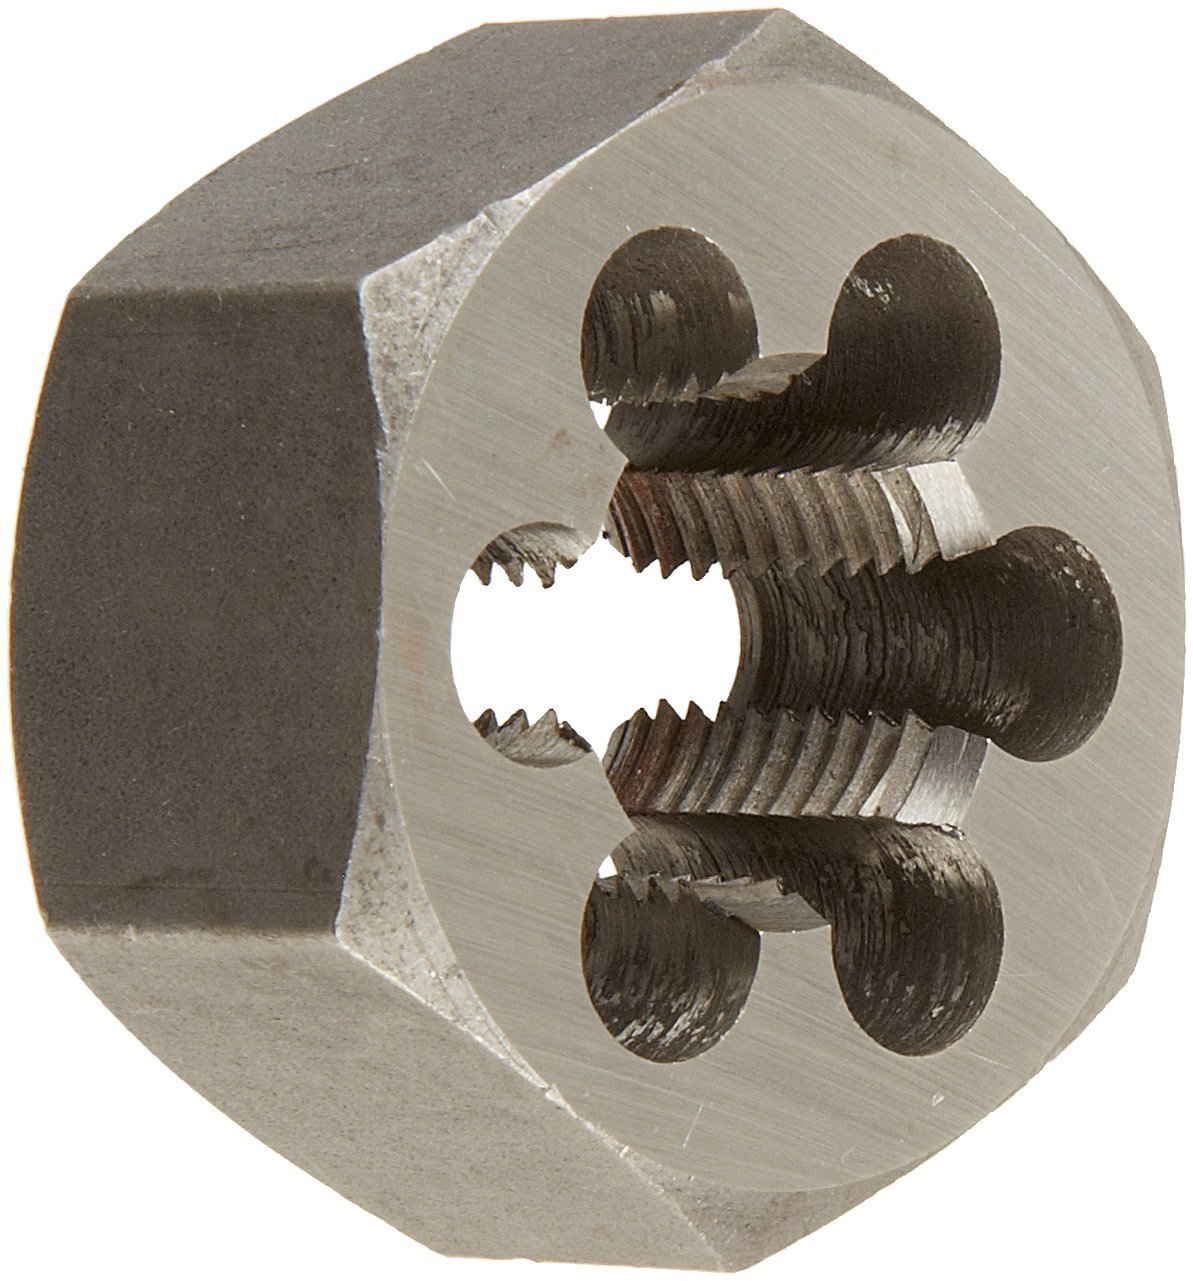 Drill America m22 X 1.5 Carbon Steel Hex Rethreading Die, DWT Series by Drill America